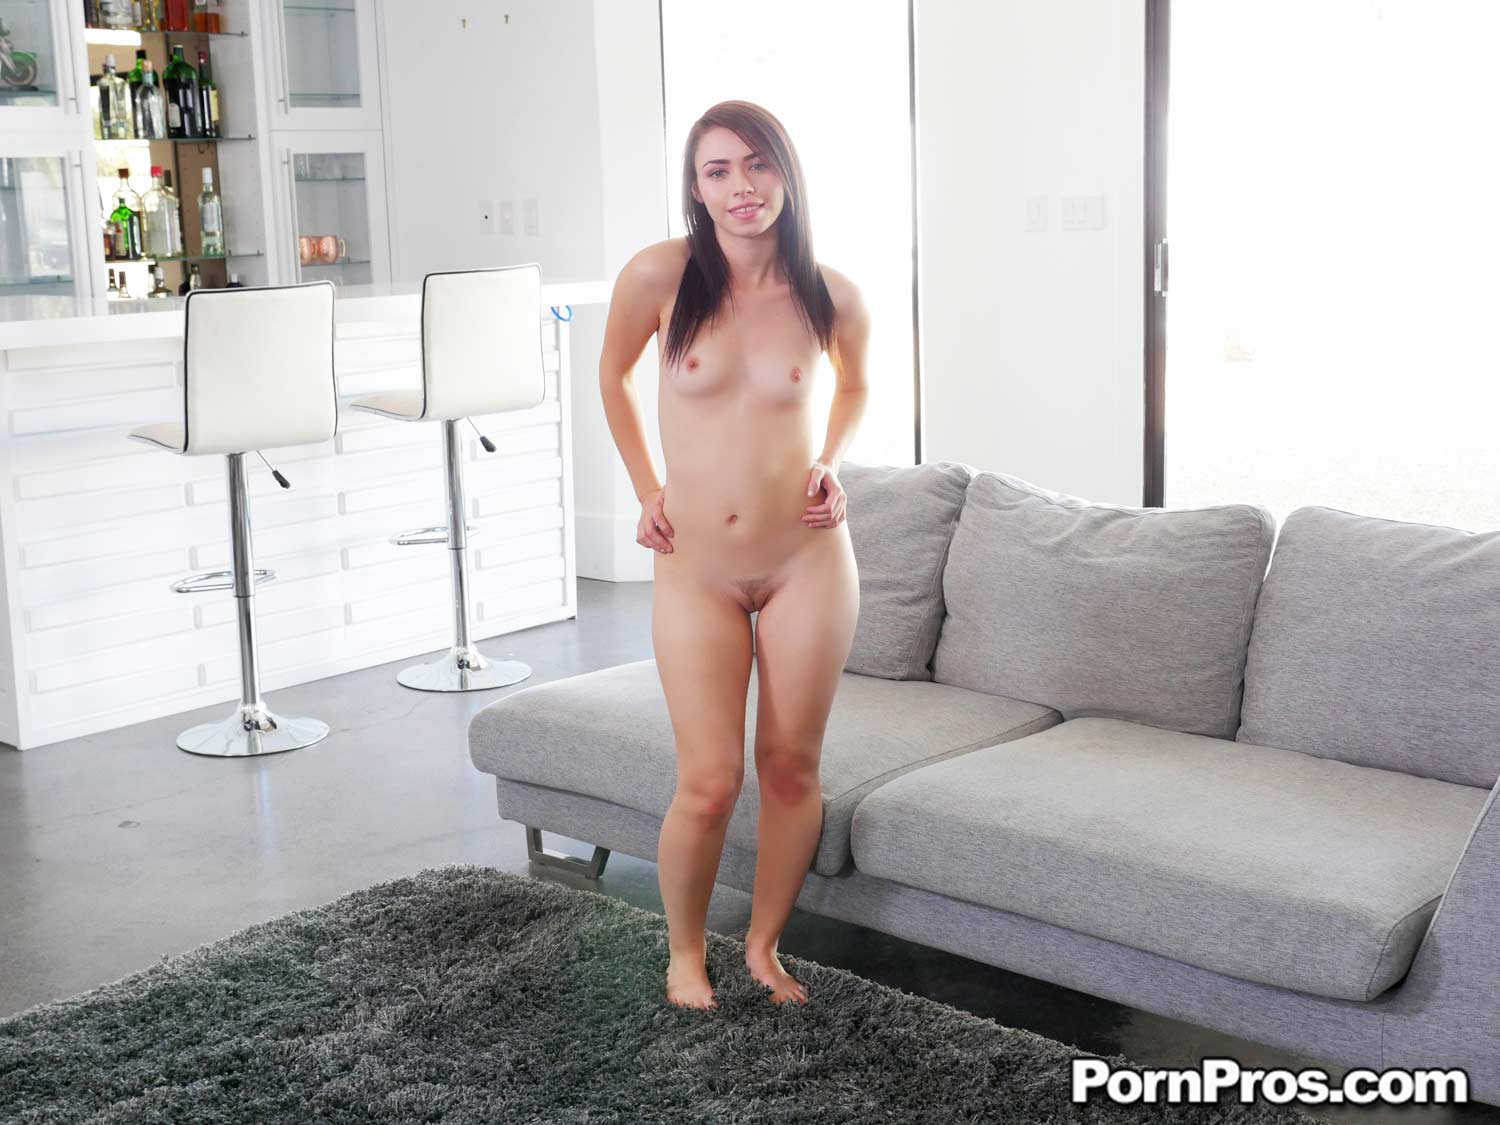 Bratty sis little sister wants to fuck while bfs on phone 4